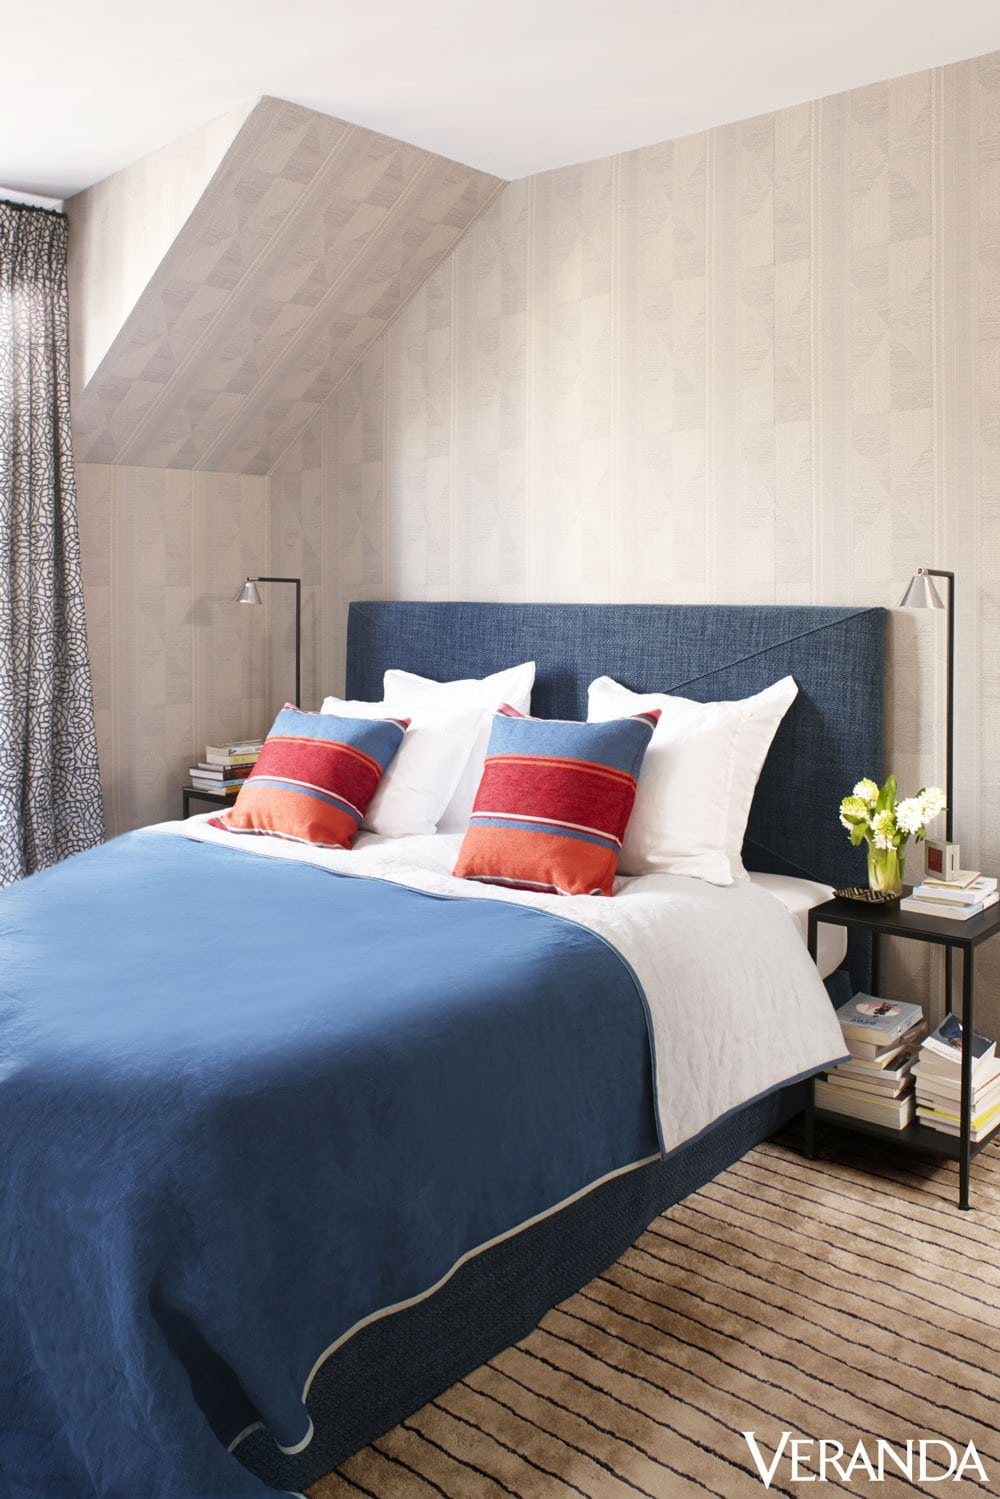 Pierre Frey's bedroom with blue bedspread and jacquard wallpaper on @thouswellblog